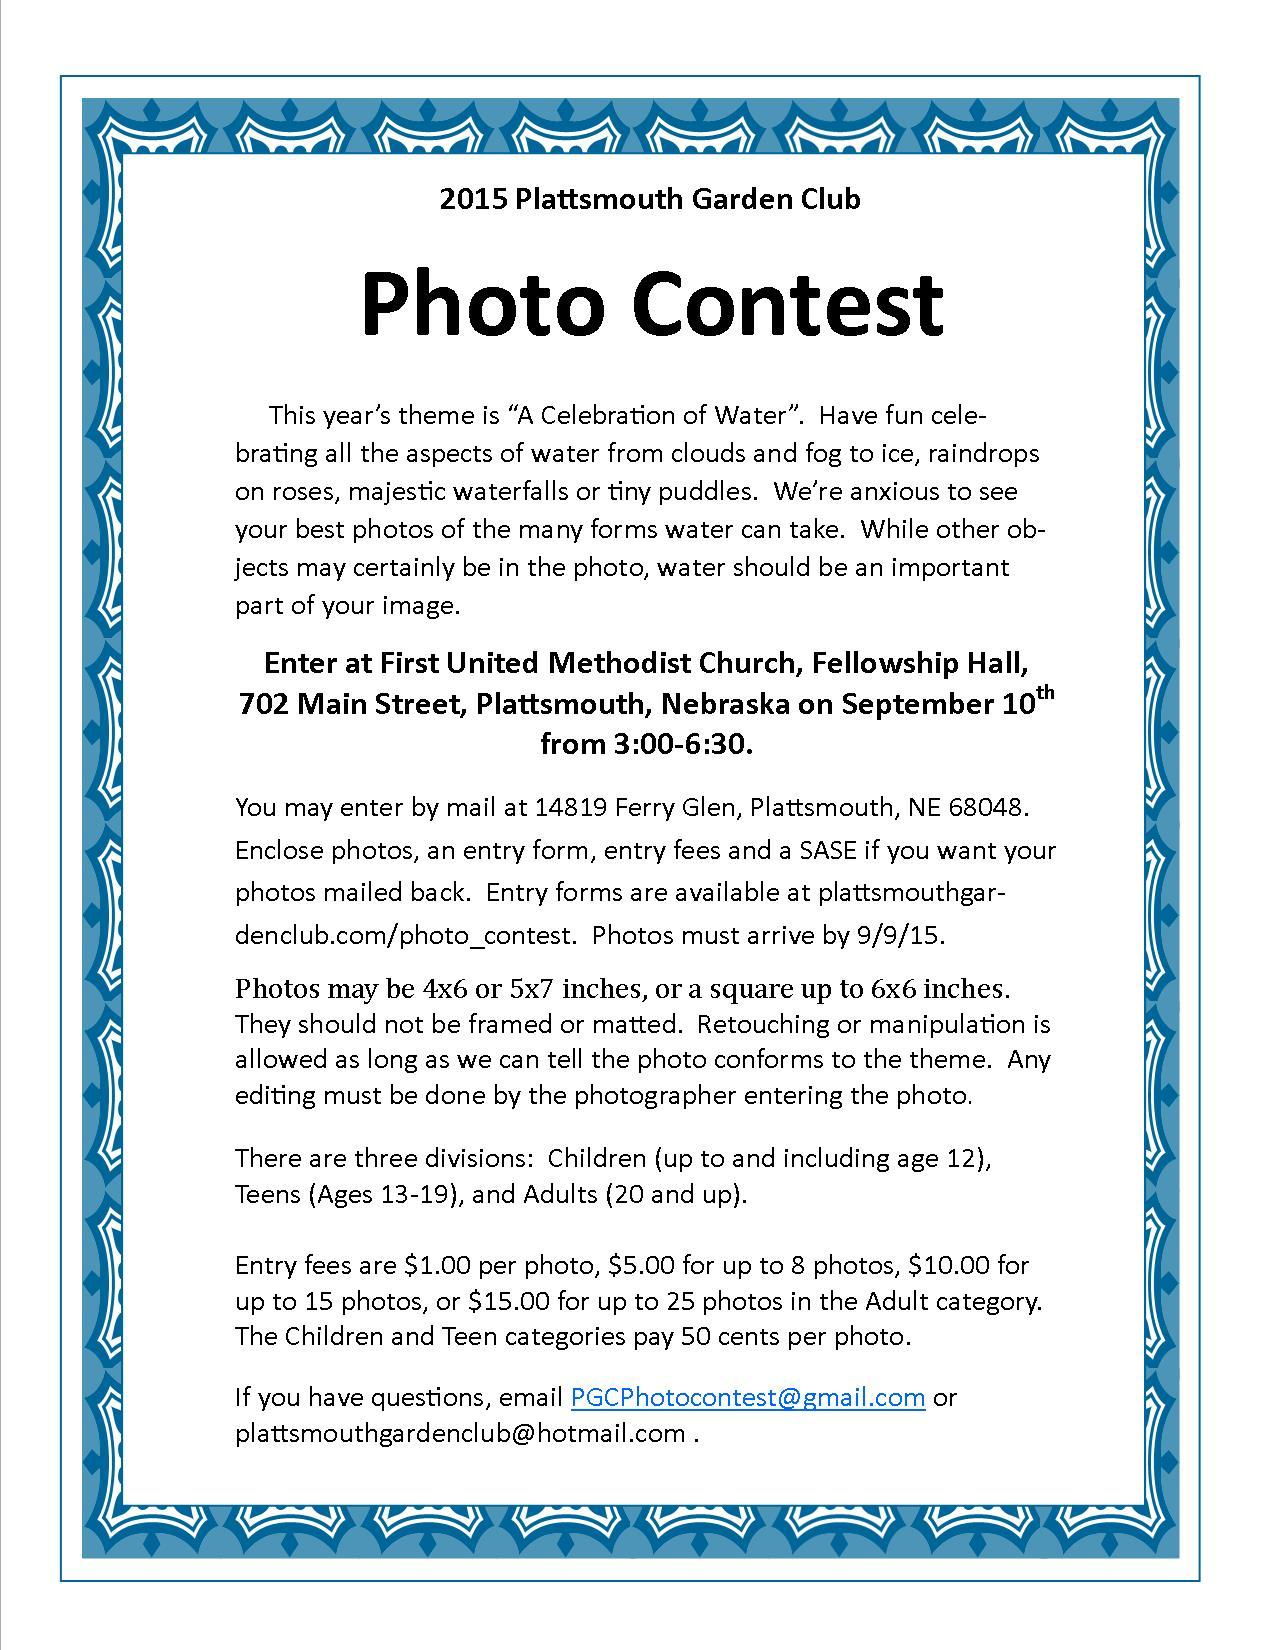 PGC 2015 photocontest